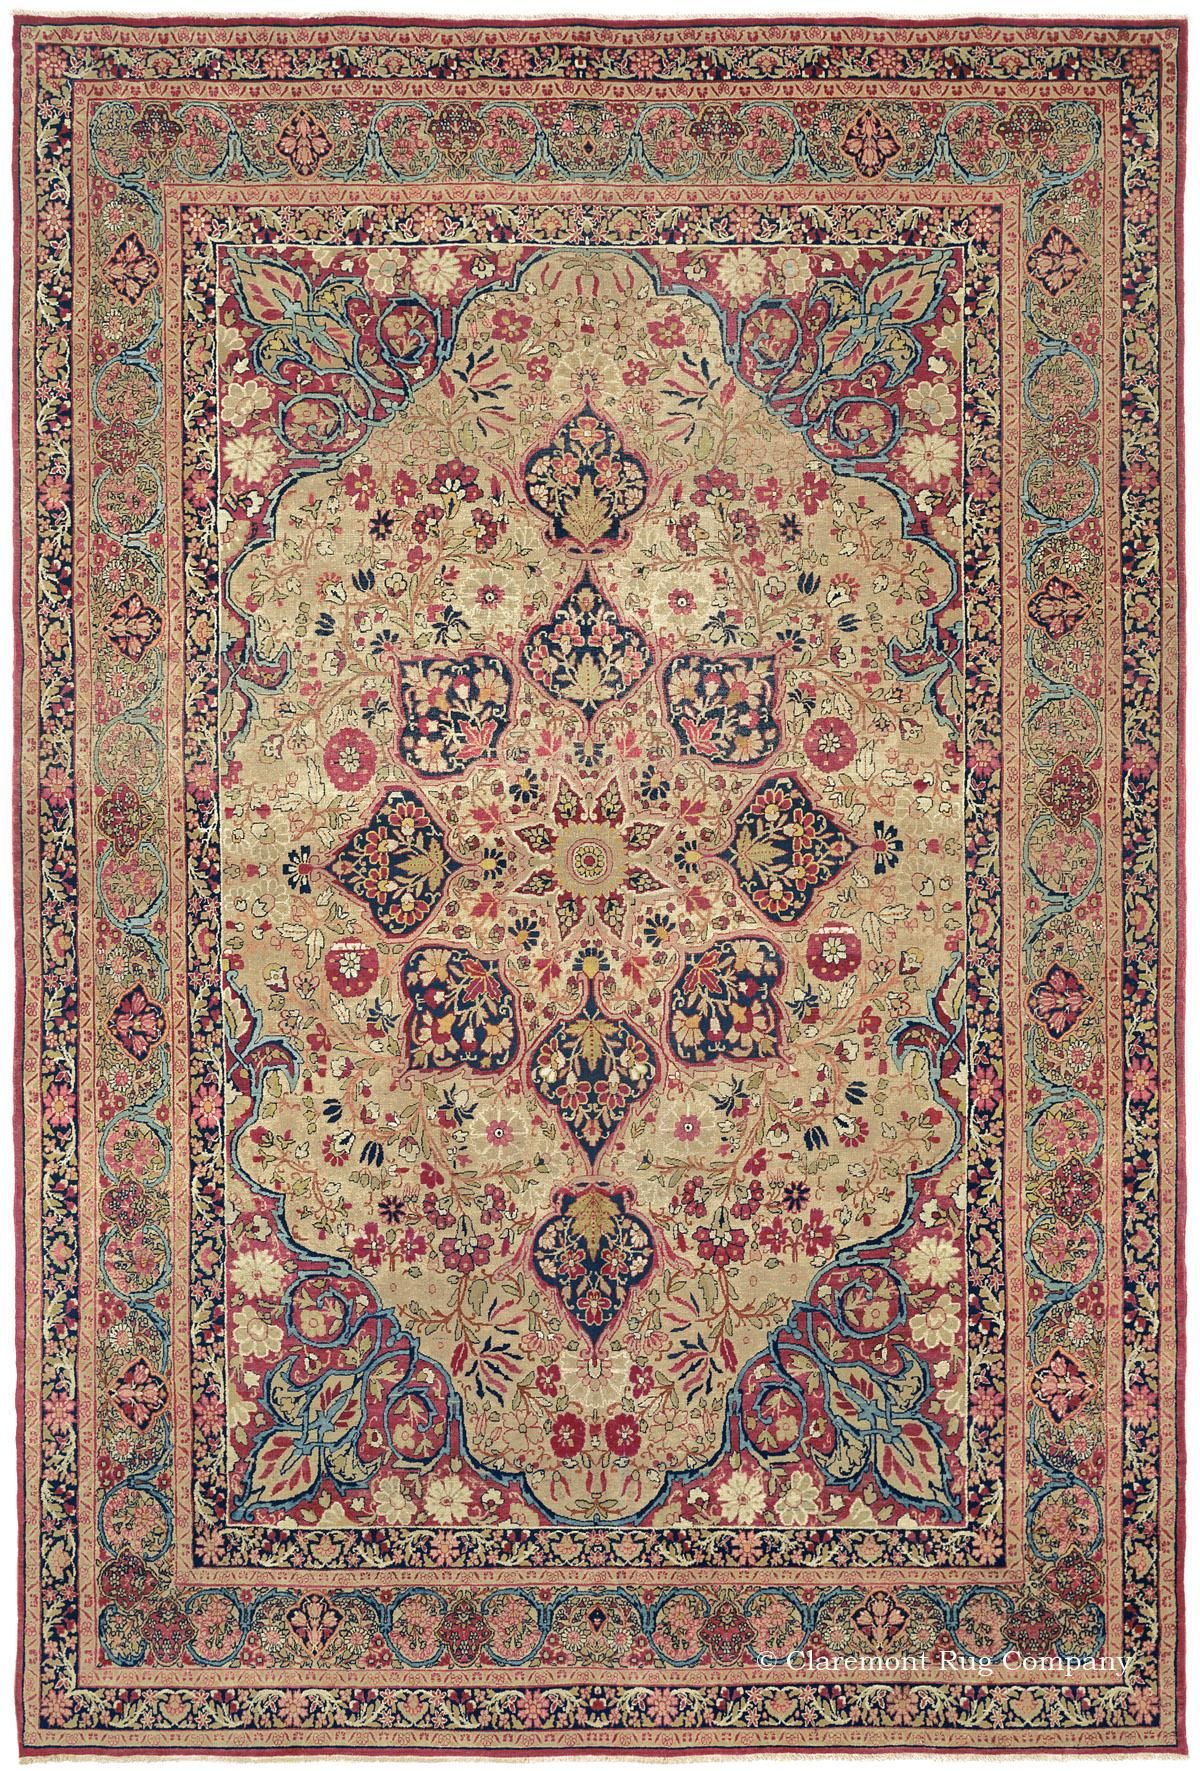 LAVER KIRMAN - Southeast Persian, 7ft 10in x 11ft 5in, Circa 1875. The Roman couple's collection of antique court carpets includes this stellar representative of one of the most important classical styles - Laver Kirman. From its mesmerizing center medallion to its virtuoso borders, all of the motifs have an etched quality.